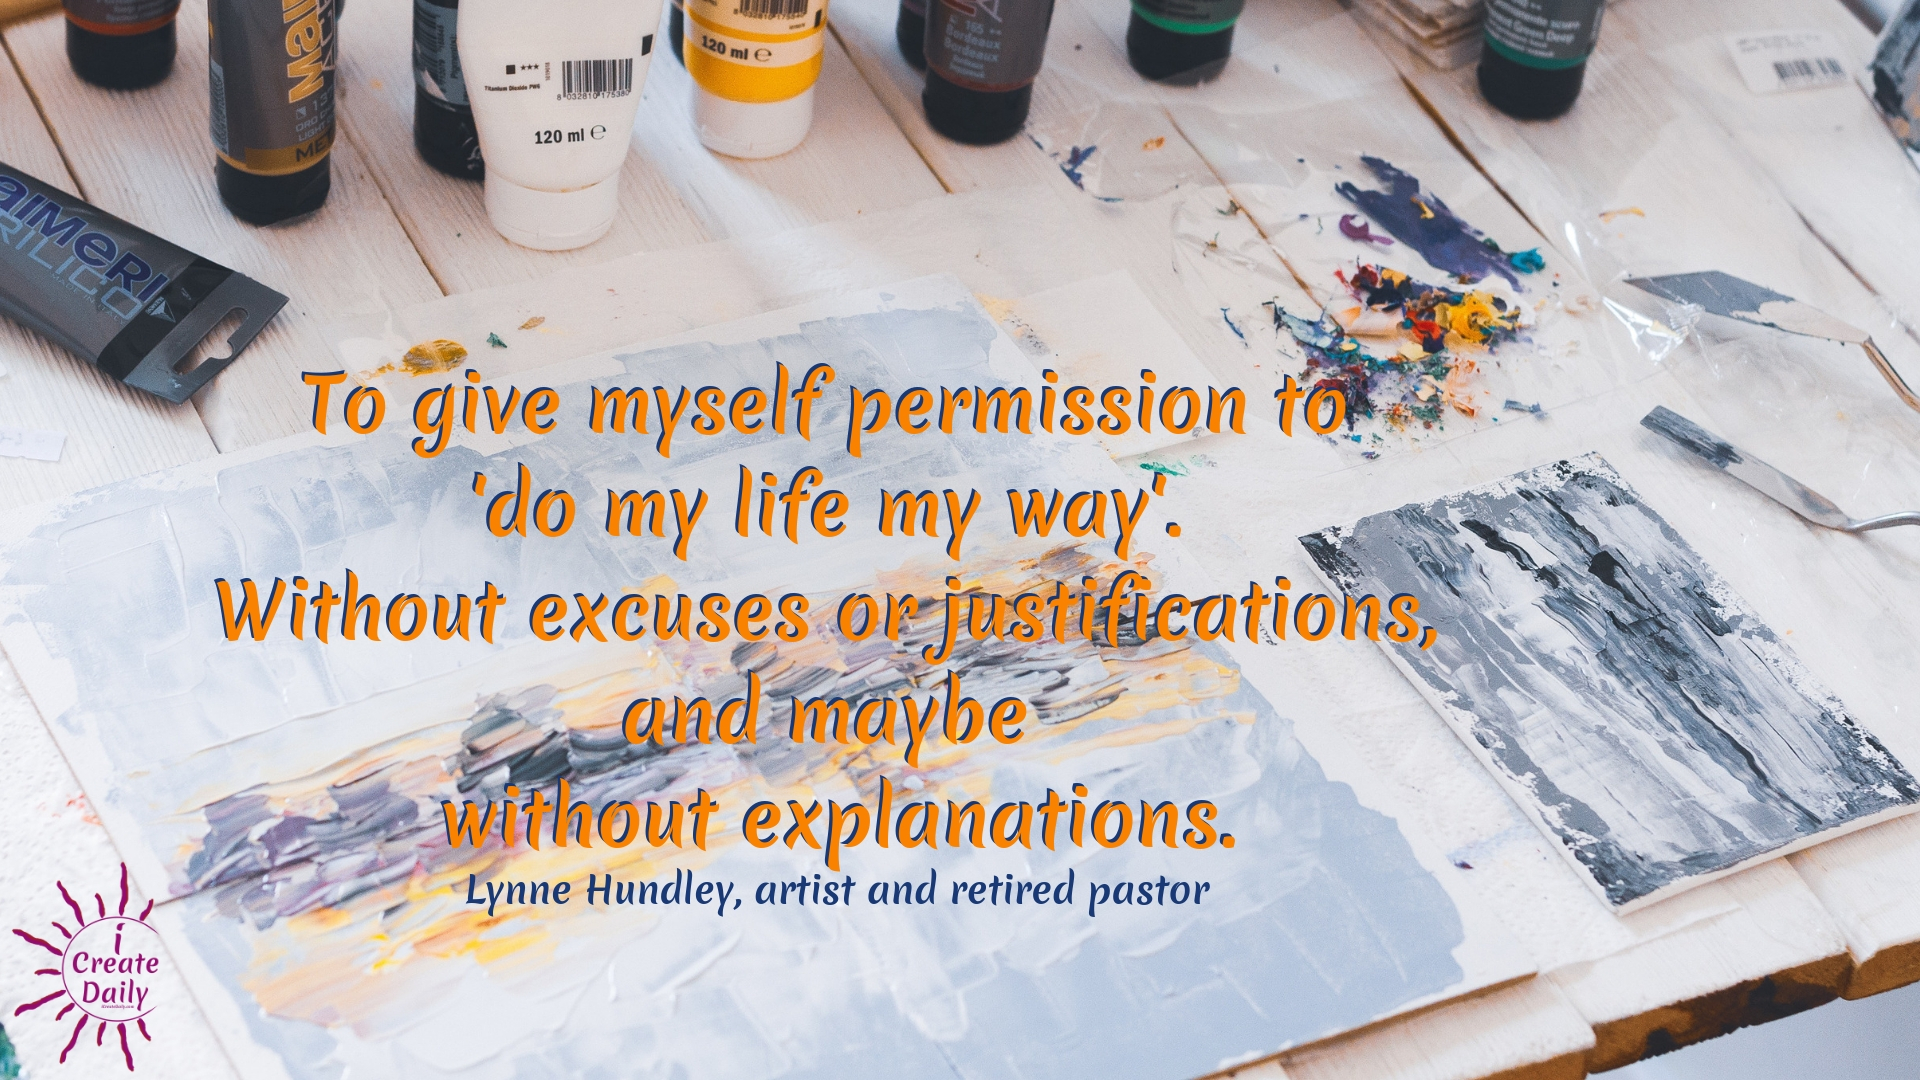 """To give myself permission to 'do my life my way'. Without excuses or justifications, and maybe without explanations."" ~Lynne Hundley, artist and retired pastor. #Relationship #Life #Quotes #Fitness #List #Setting #Personal #Future #BulletJournal #Body #Career #Couple #Travel #Summer #Monthly #BestFriend #House #Ideas #Family #Money #Smart #School #Health #Daily #Board #Weekly #Friendship #NewYear #Financial"